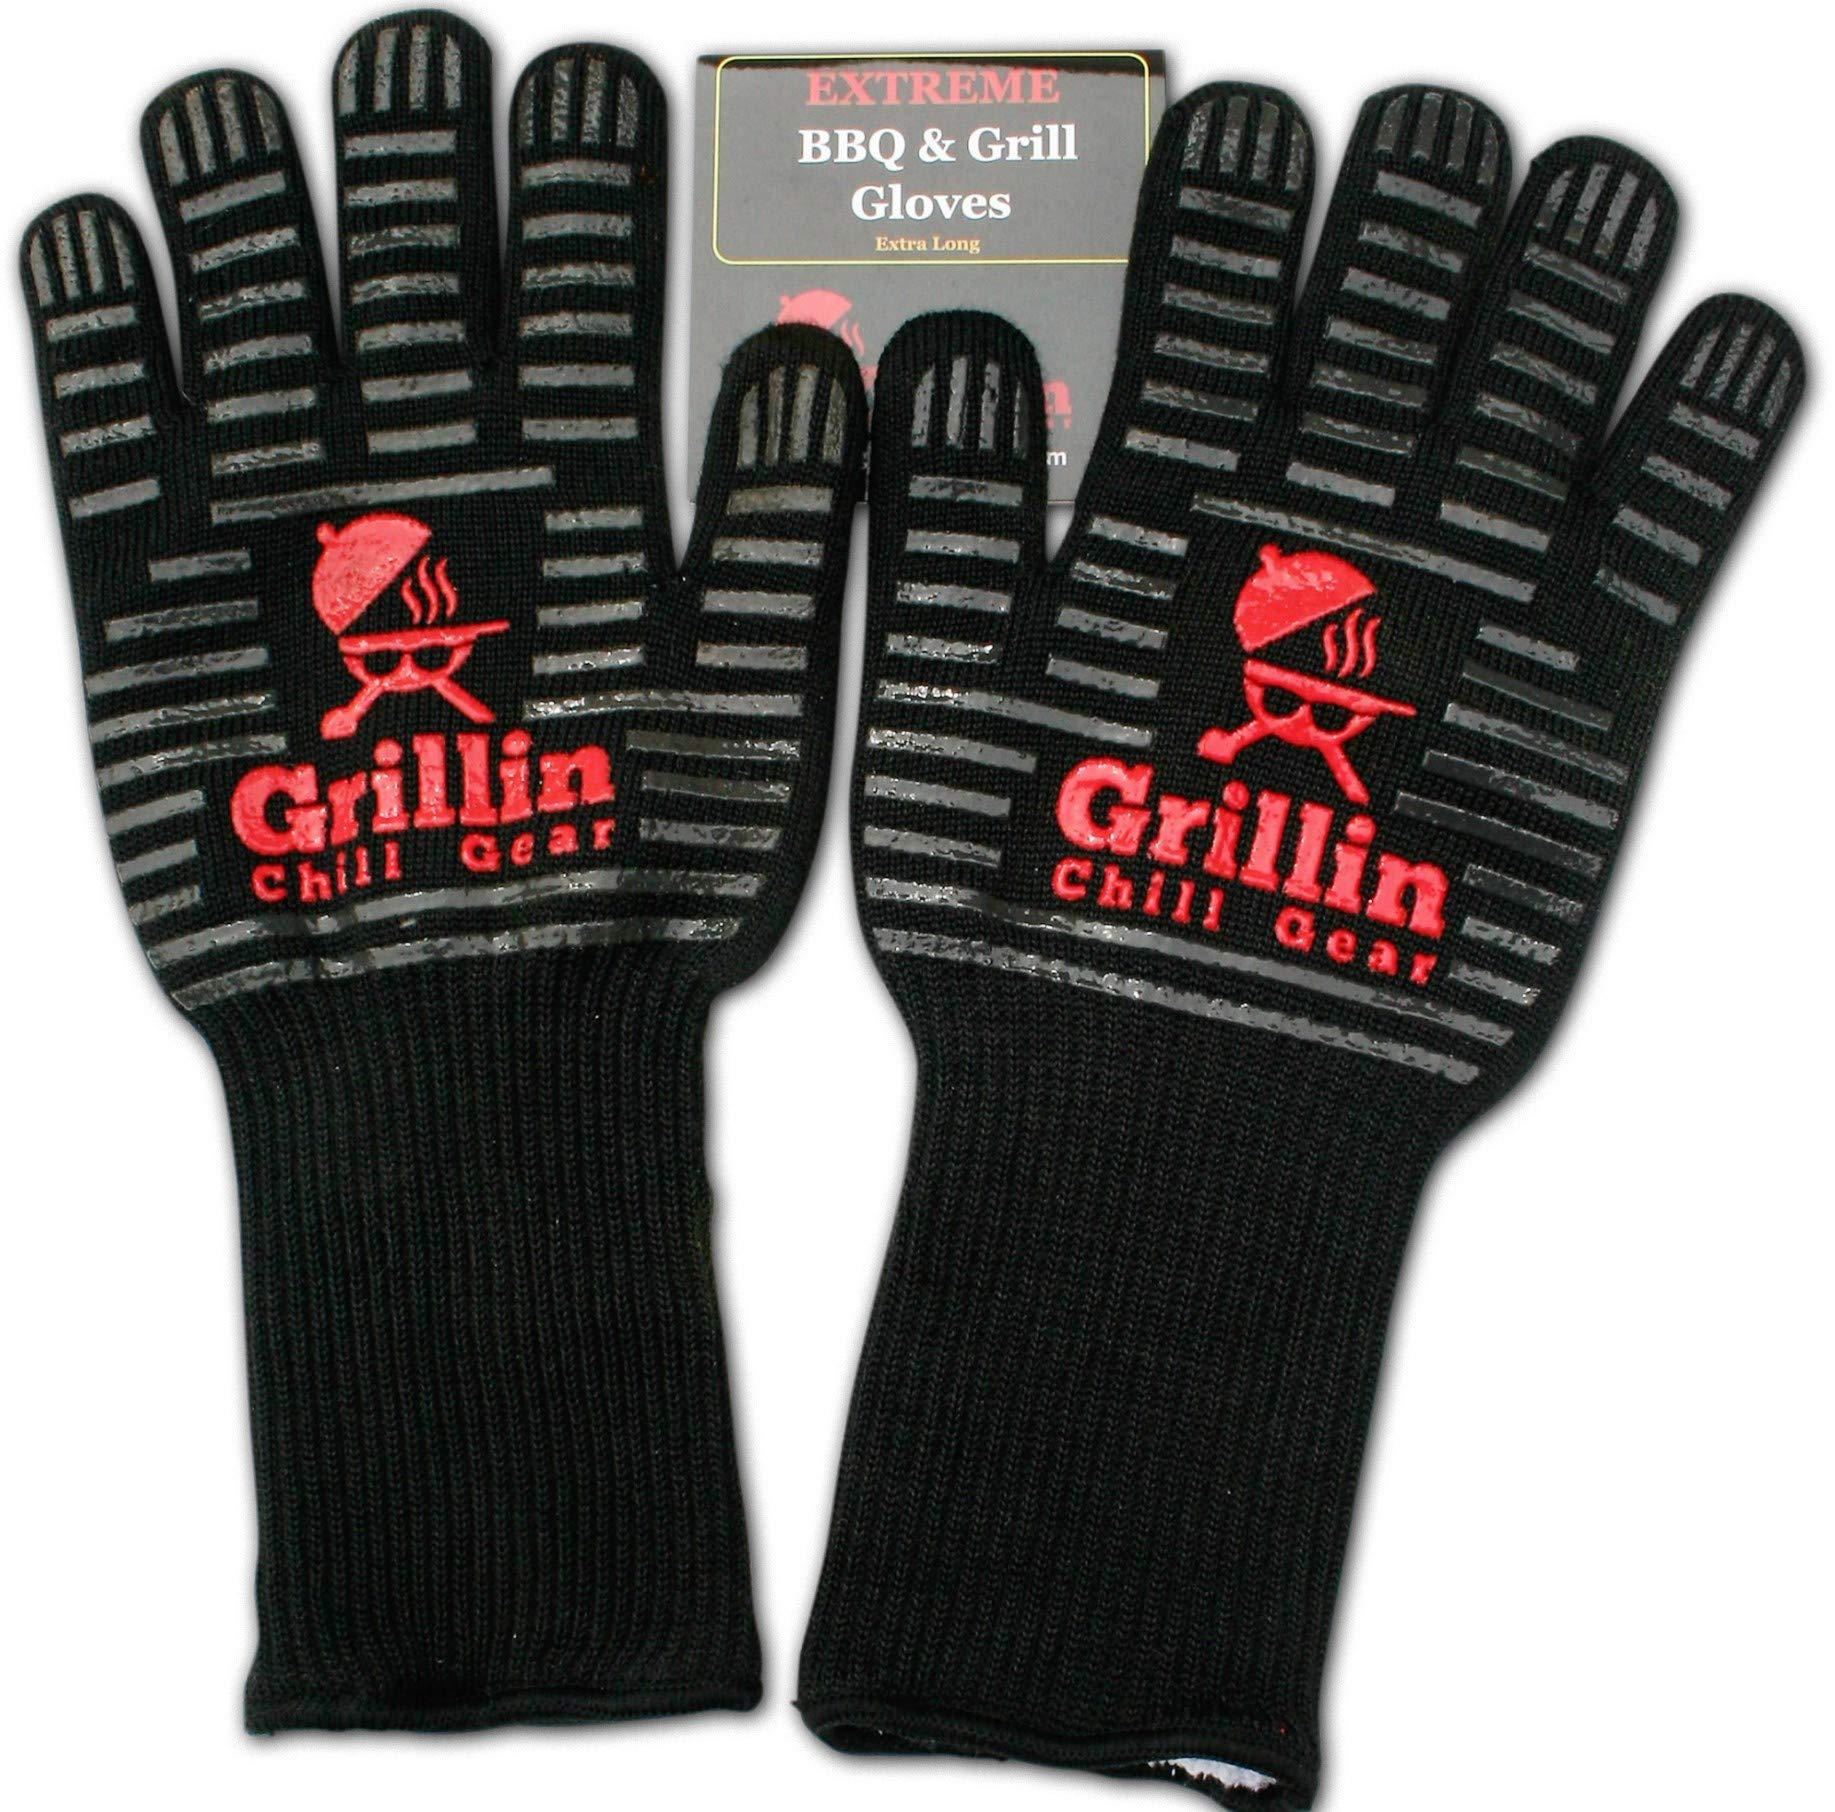 BBQ Grilling Gloves by Grill n Chill - 932°F Extreme Heat Resistant Grill Gloves for Cooking, Oven, Barbecue - Longest (15'') for Best Fire Protection